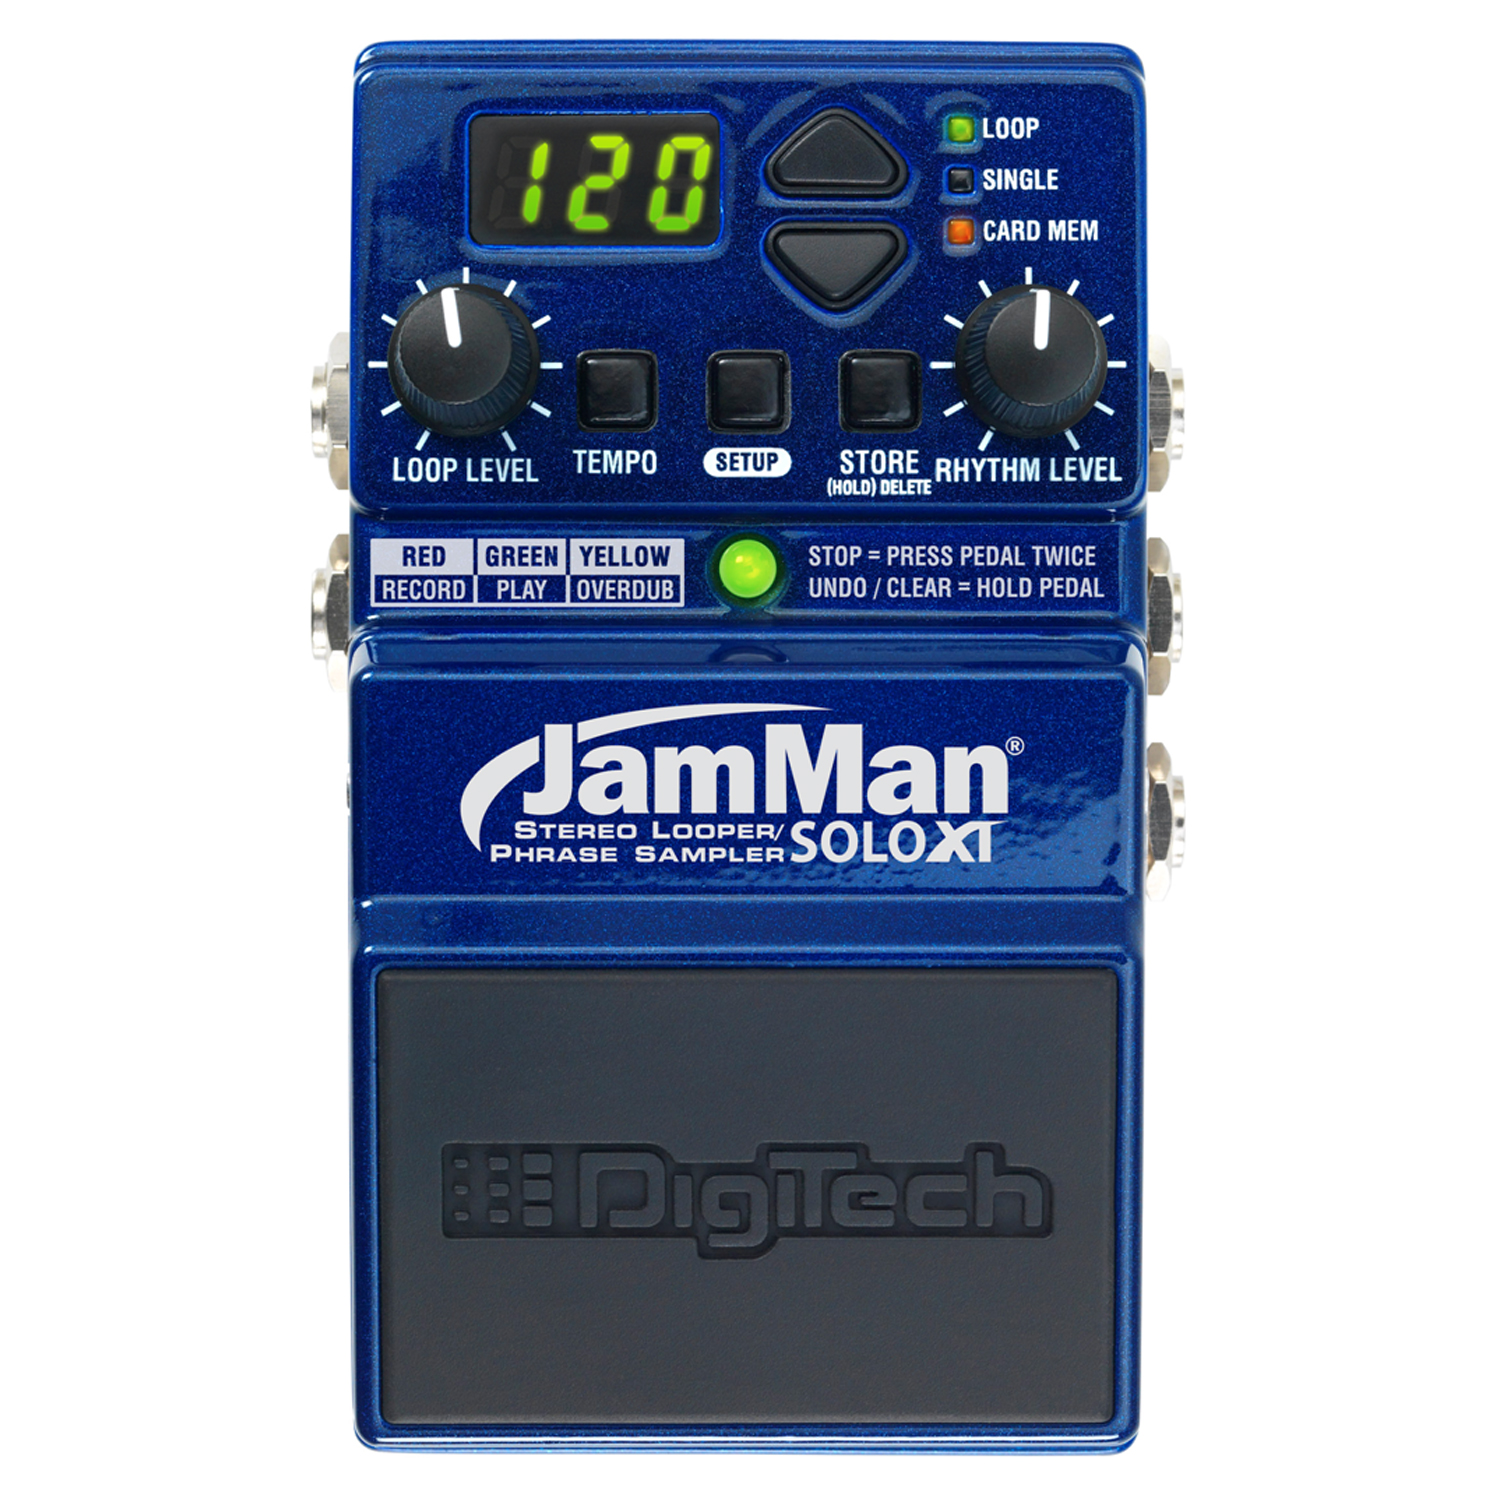 Stereo Looping in a Compact Pedal with JamSync